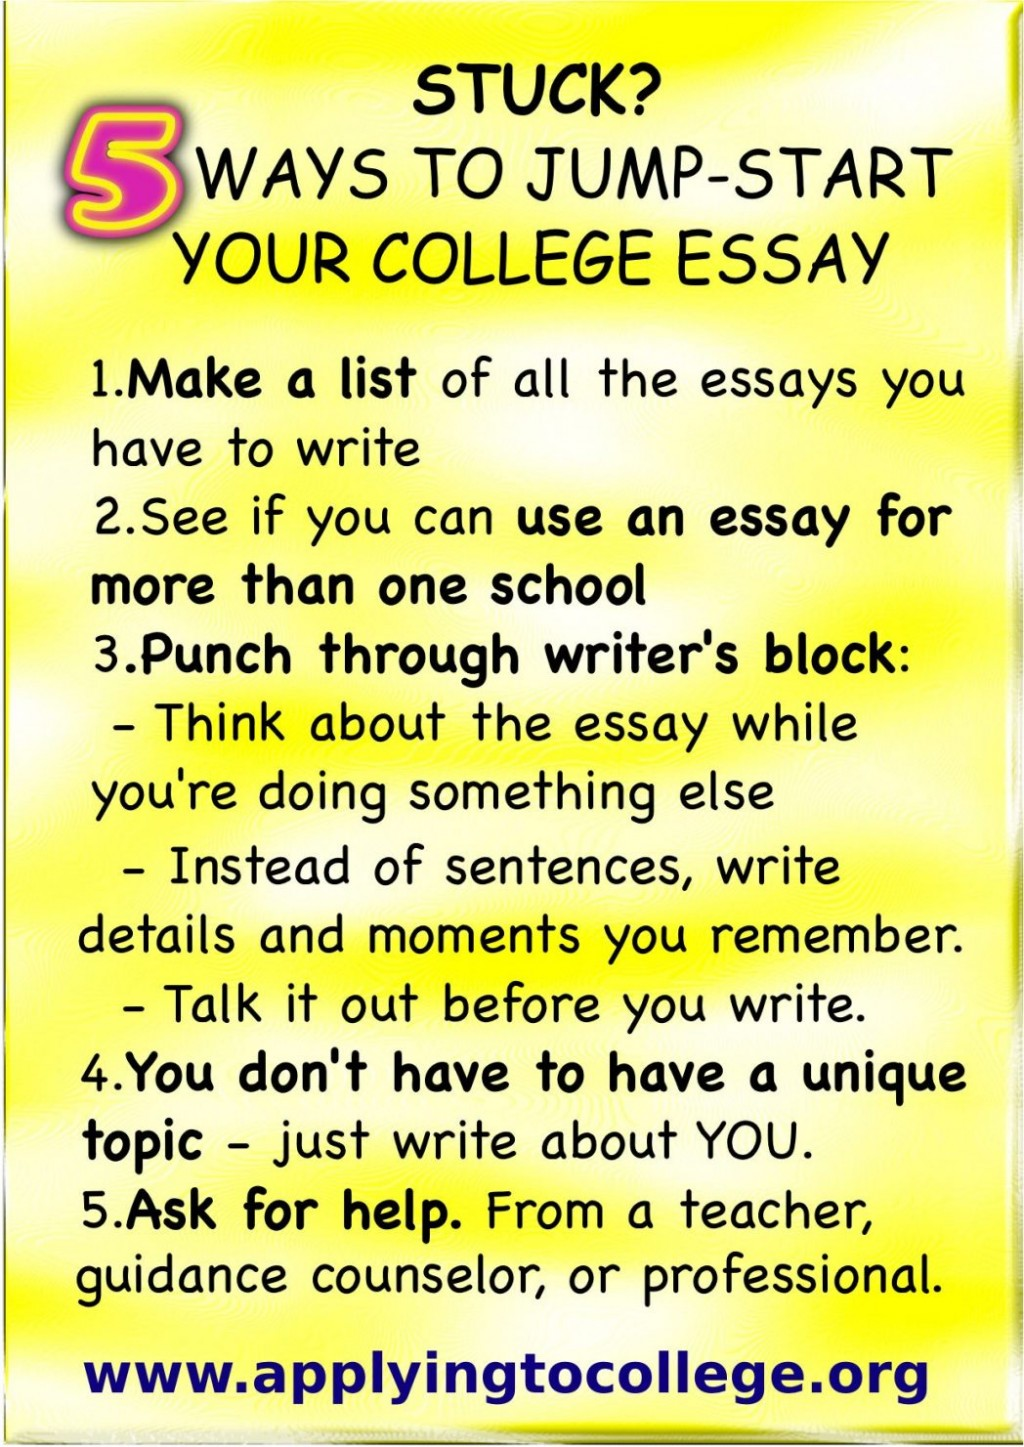 016 How To Start College Application Essay Ways Reduce Stress After Highschool About Yourself Writing Hook With Quote Examples Exceptional A Good Write Wikihow Large